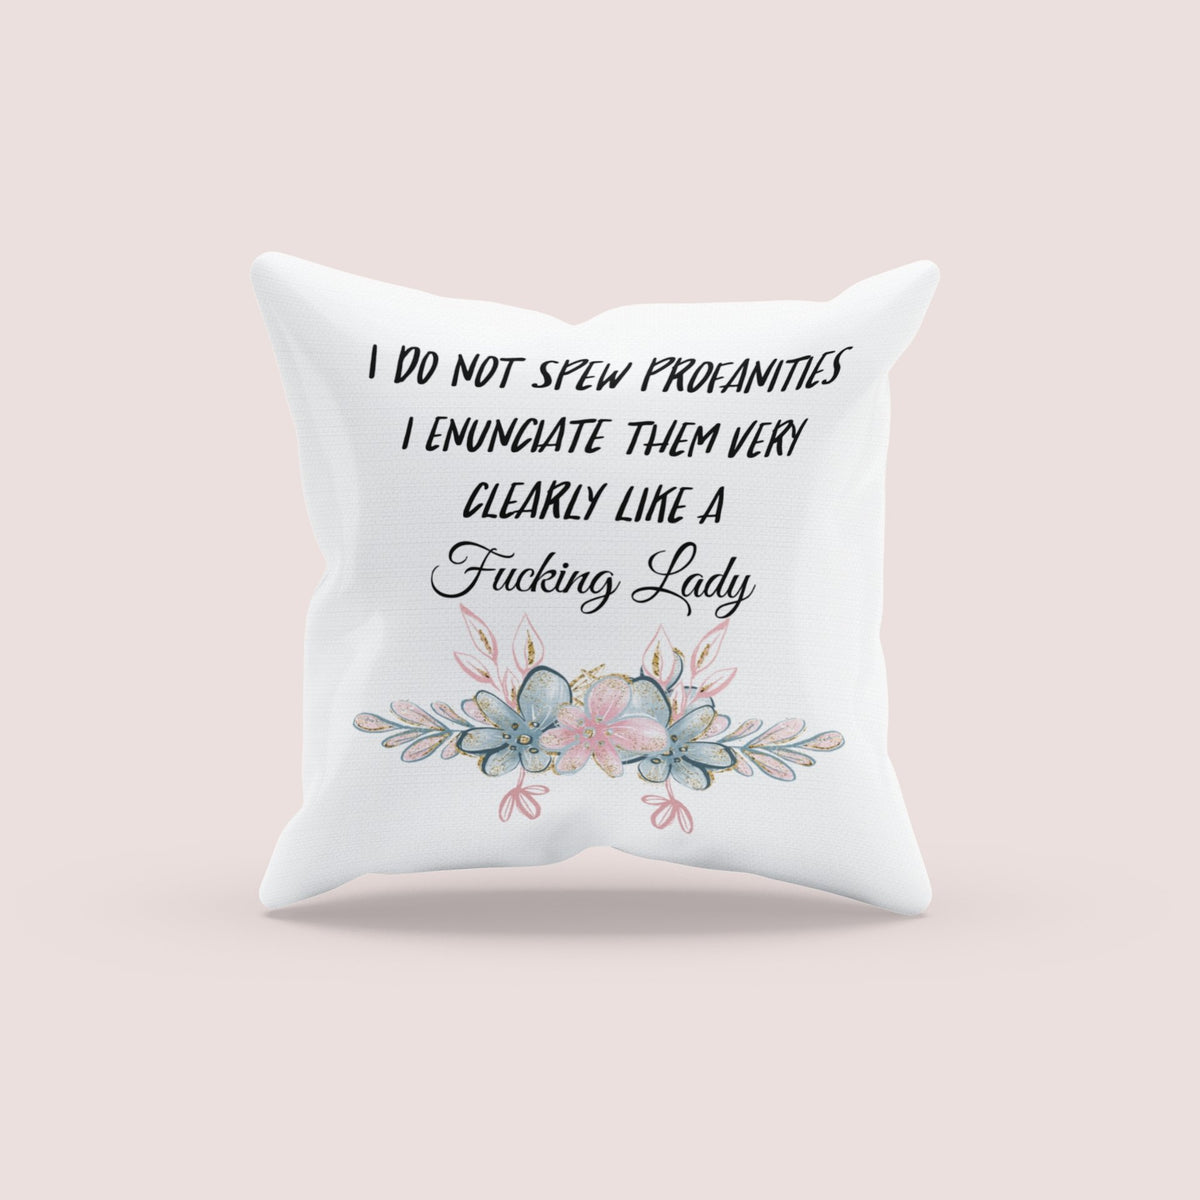 I do not spew profanities - Cushion cover freeshipping - BCV Personalised